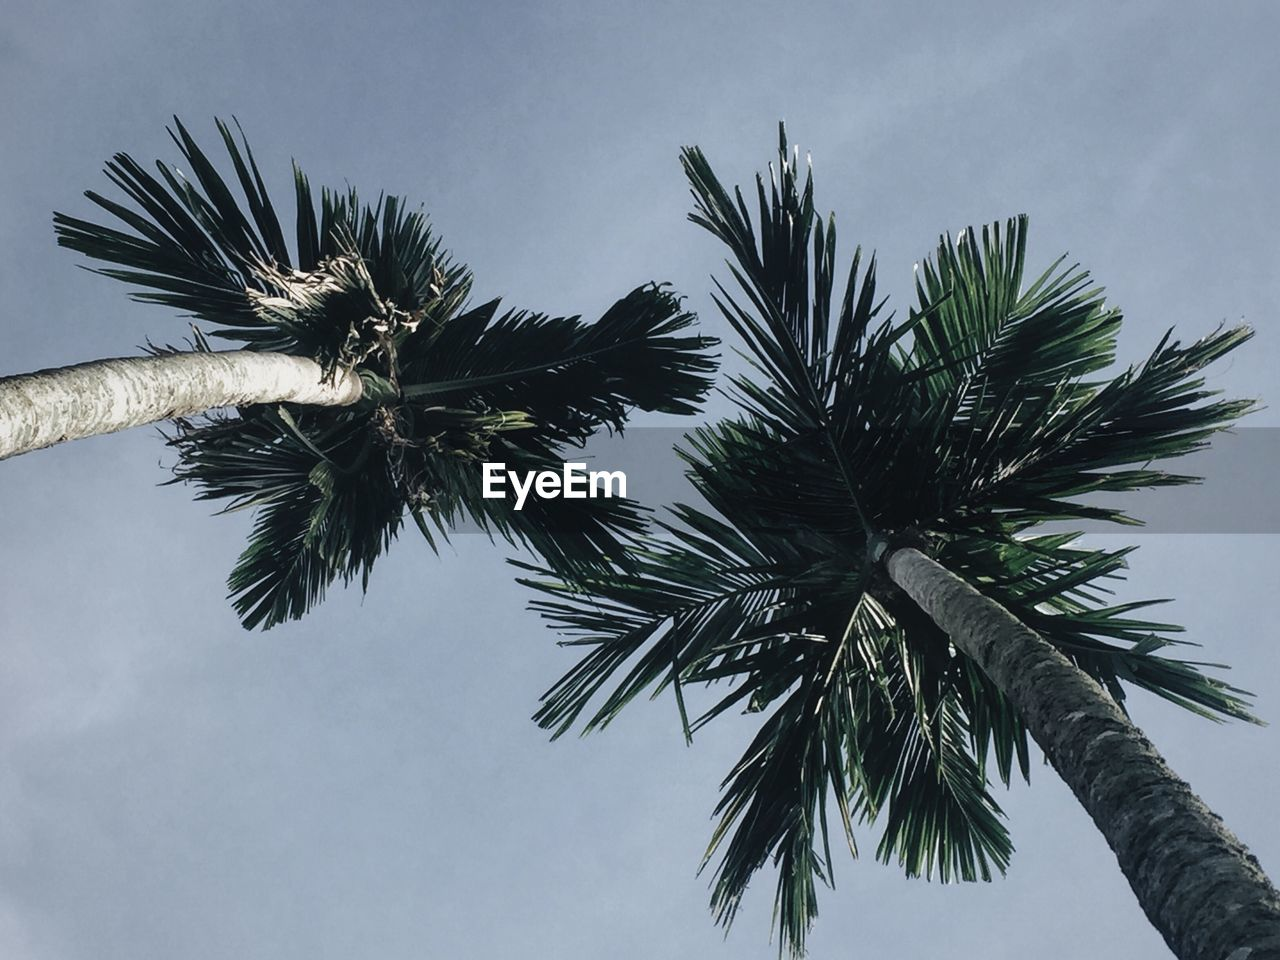 palm tree, sky, tree, tropical climate, plant, low angle view, growth, nature, palm leaf, no people, tranquility, trunk, tree trunk, beauty in nature, coconut palm tree, leaf, day, outdoors, green color, scenics - nature, tropical tree